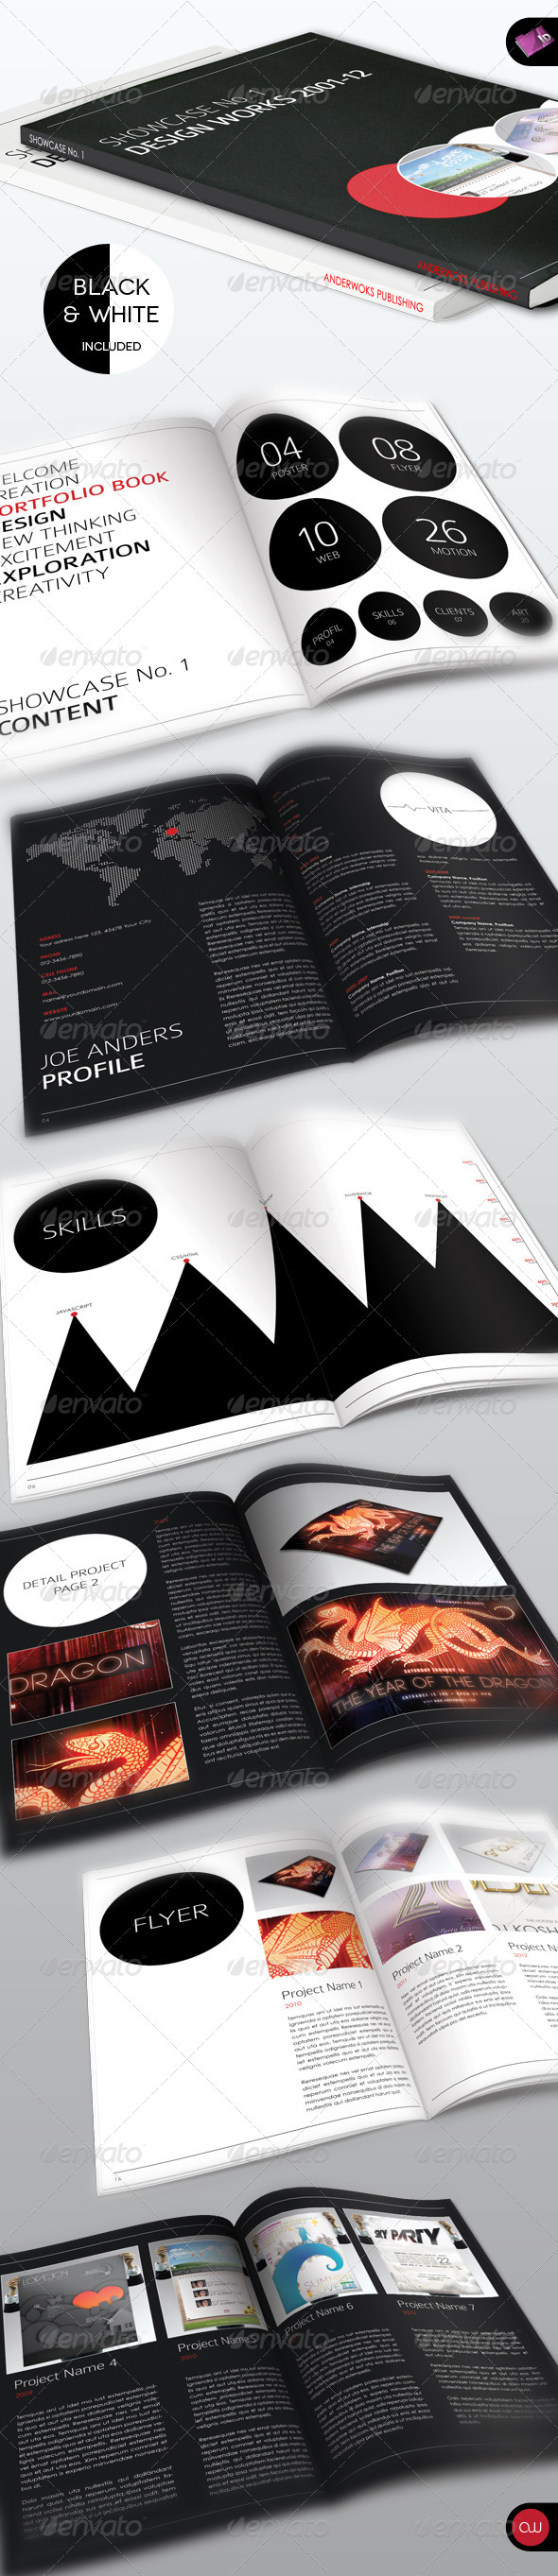 Showcase No.1 • Portrait Portfolio Brochure - Corporate Brochures